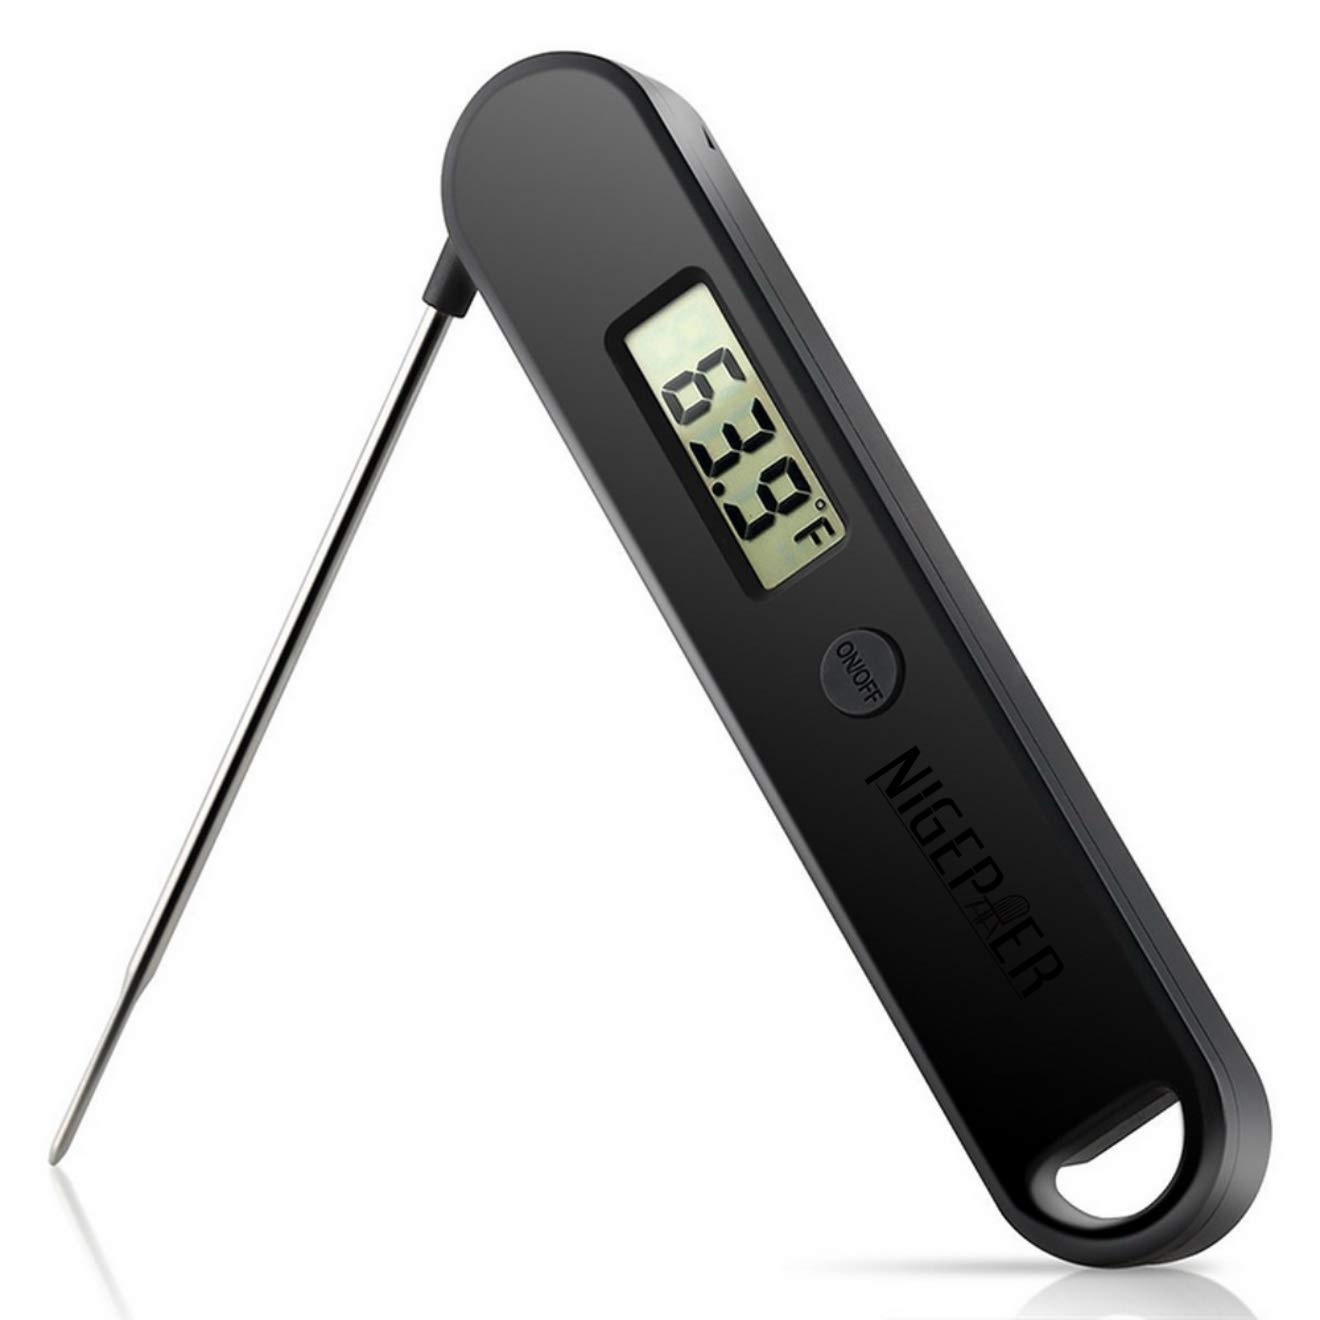 NIGEPER Meat Thermometer Cooking Thermometer Ultra Fast Digital Thermometer,Best Waterproof,Calibration and Magnet,Backlight Super Long Probe for Kitchen Cooking(BLACK-2)